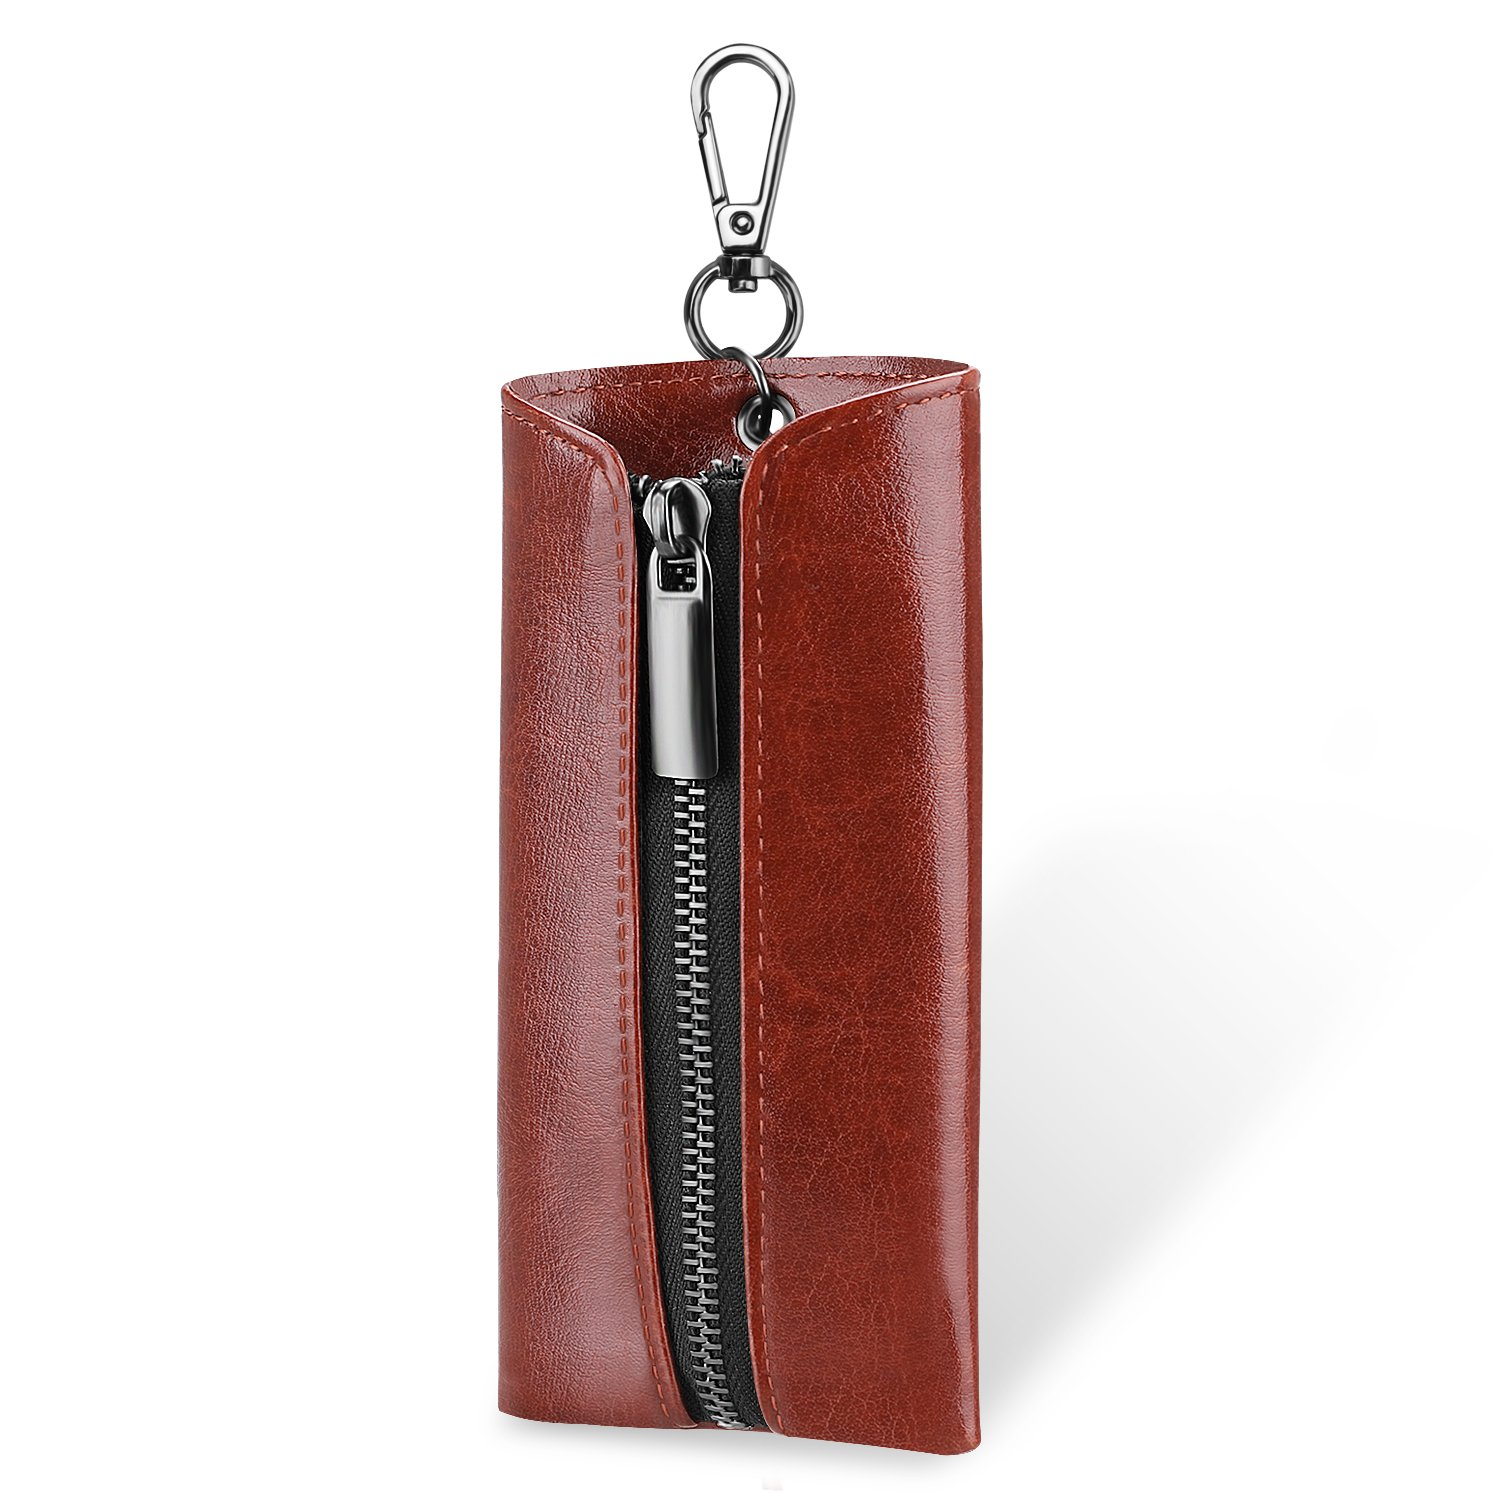 SITHON Vape Pouch for JUUL - Portable PU Leather Carrying Case E-CIG Holster with Pods Holder & Carabiner Keychain for JUUL Vaping Accessories (Brown)